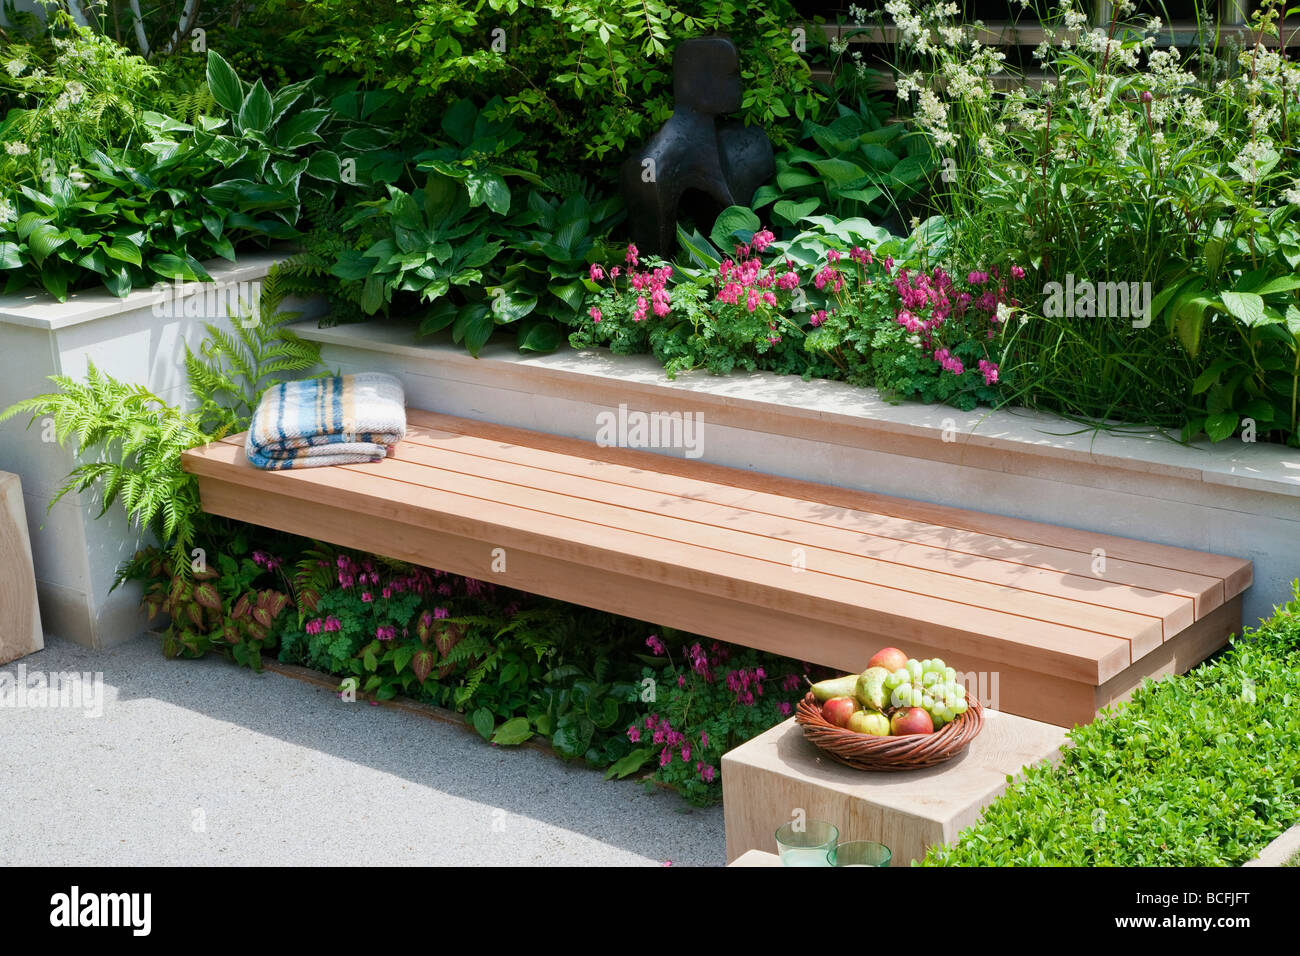 Wooden bench surrounded by geometric raised beds Plants